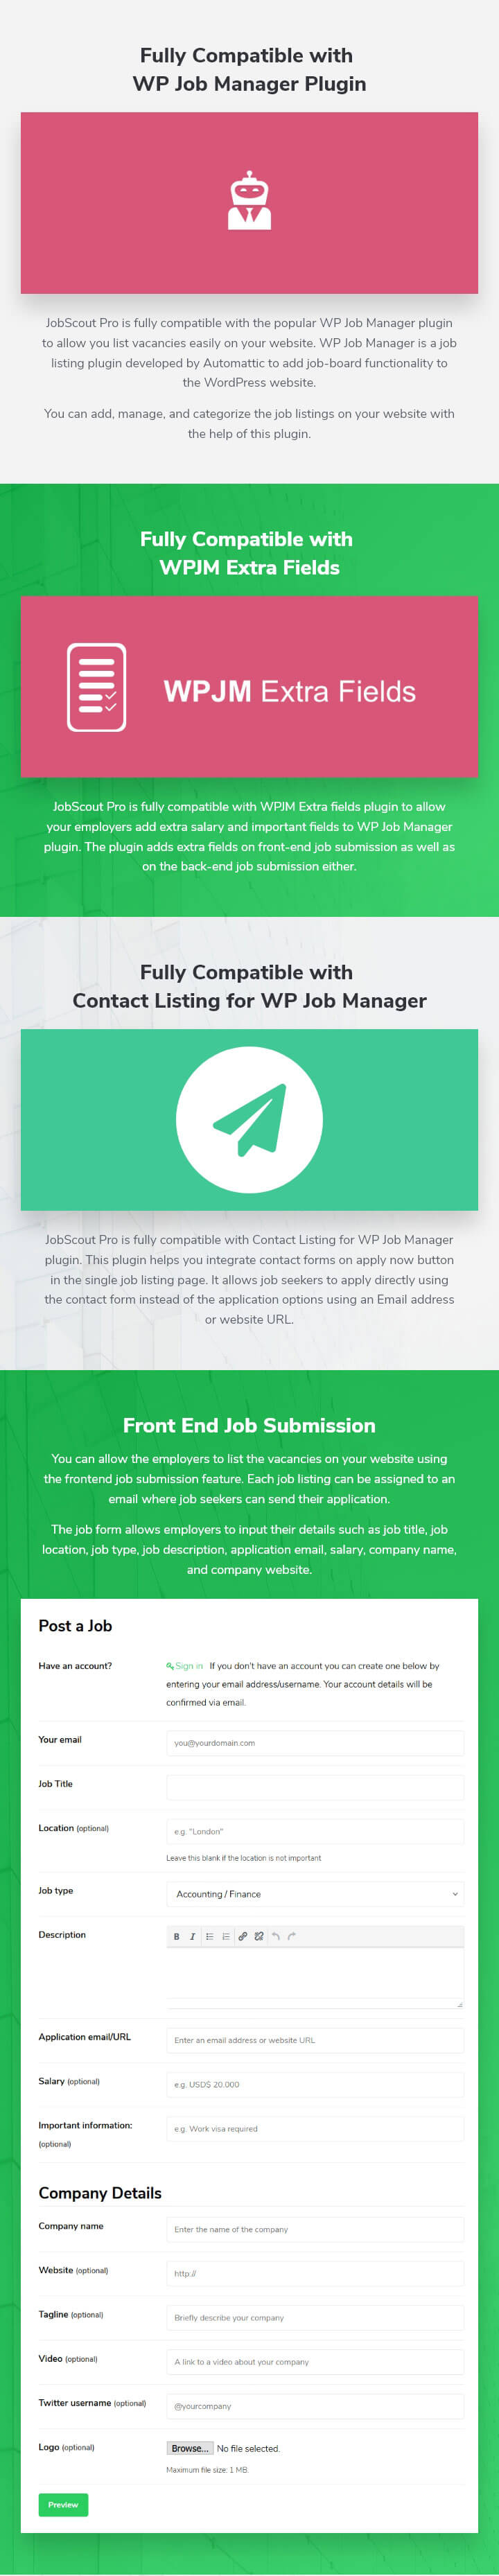 features of JobScout WordPress Theme